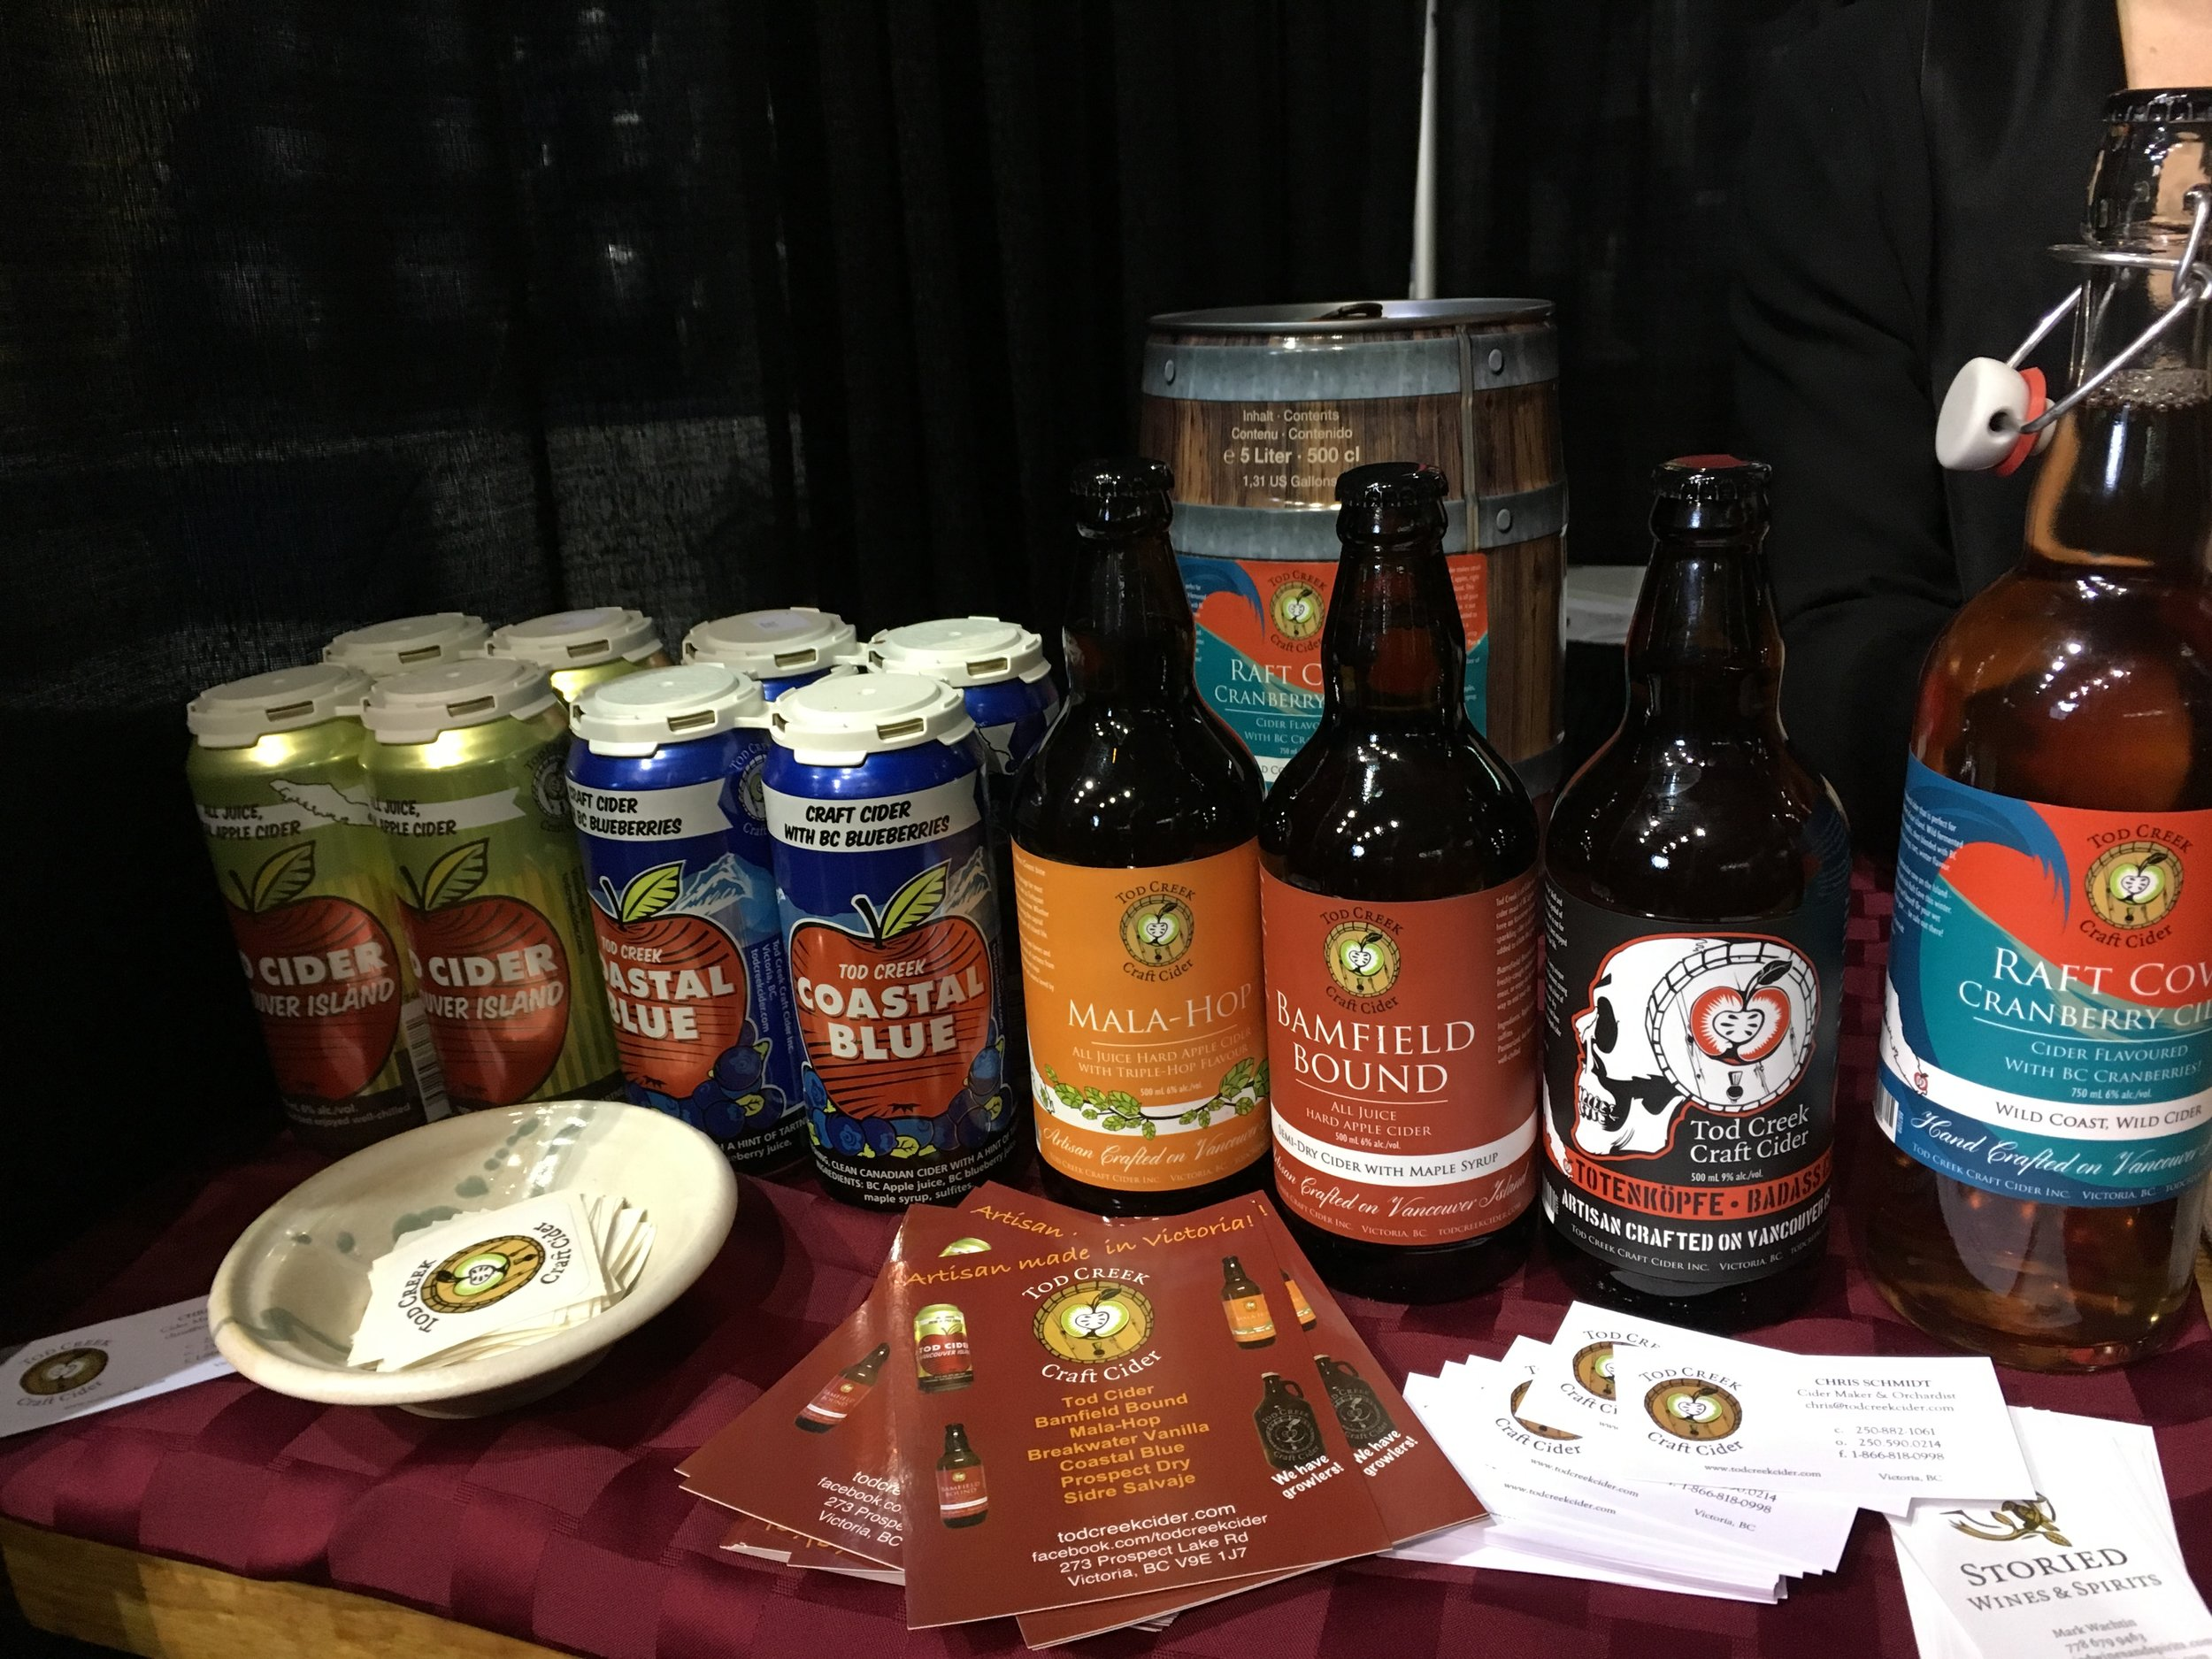 The  Tod Creek Craft Cider  stand at the Beer Show